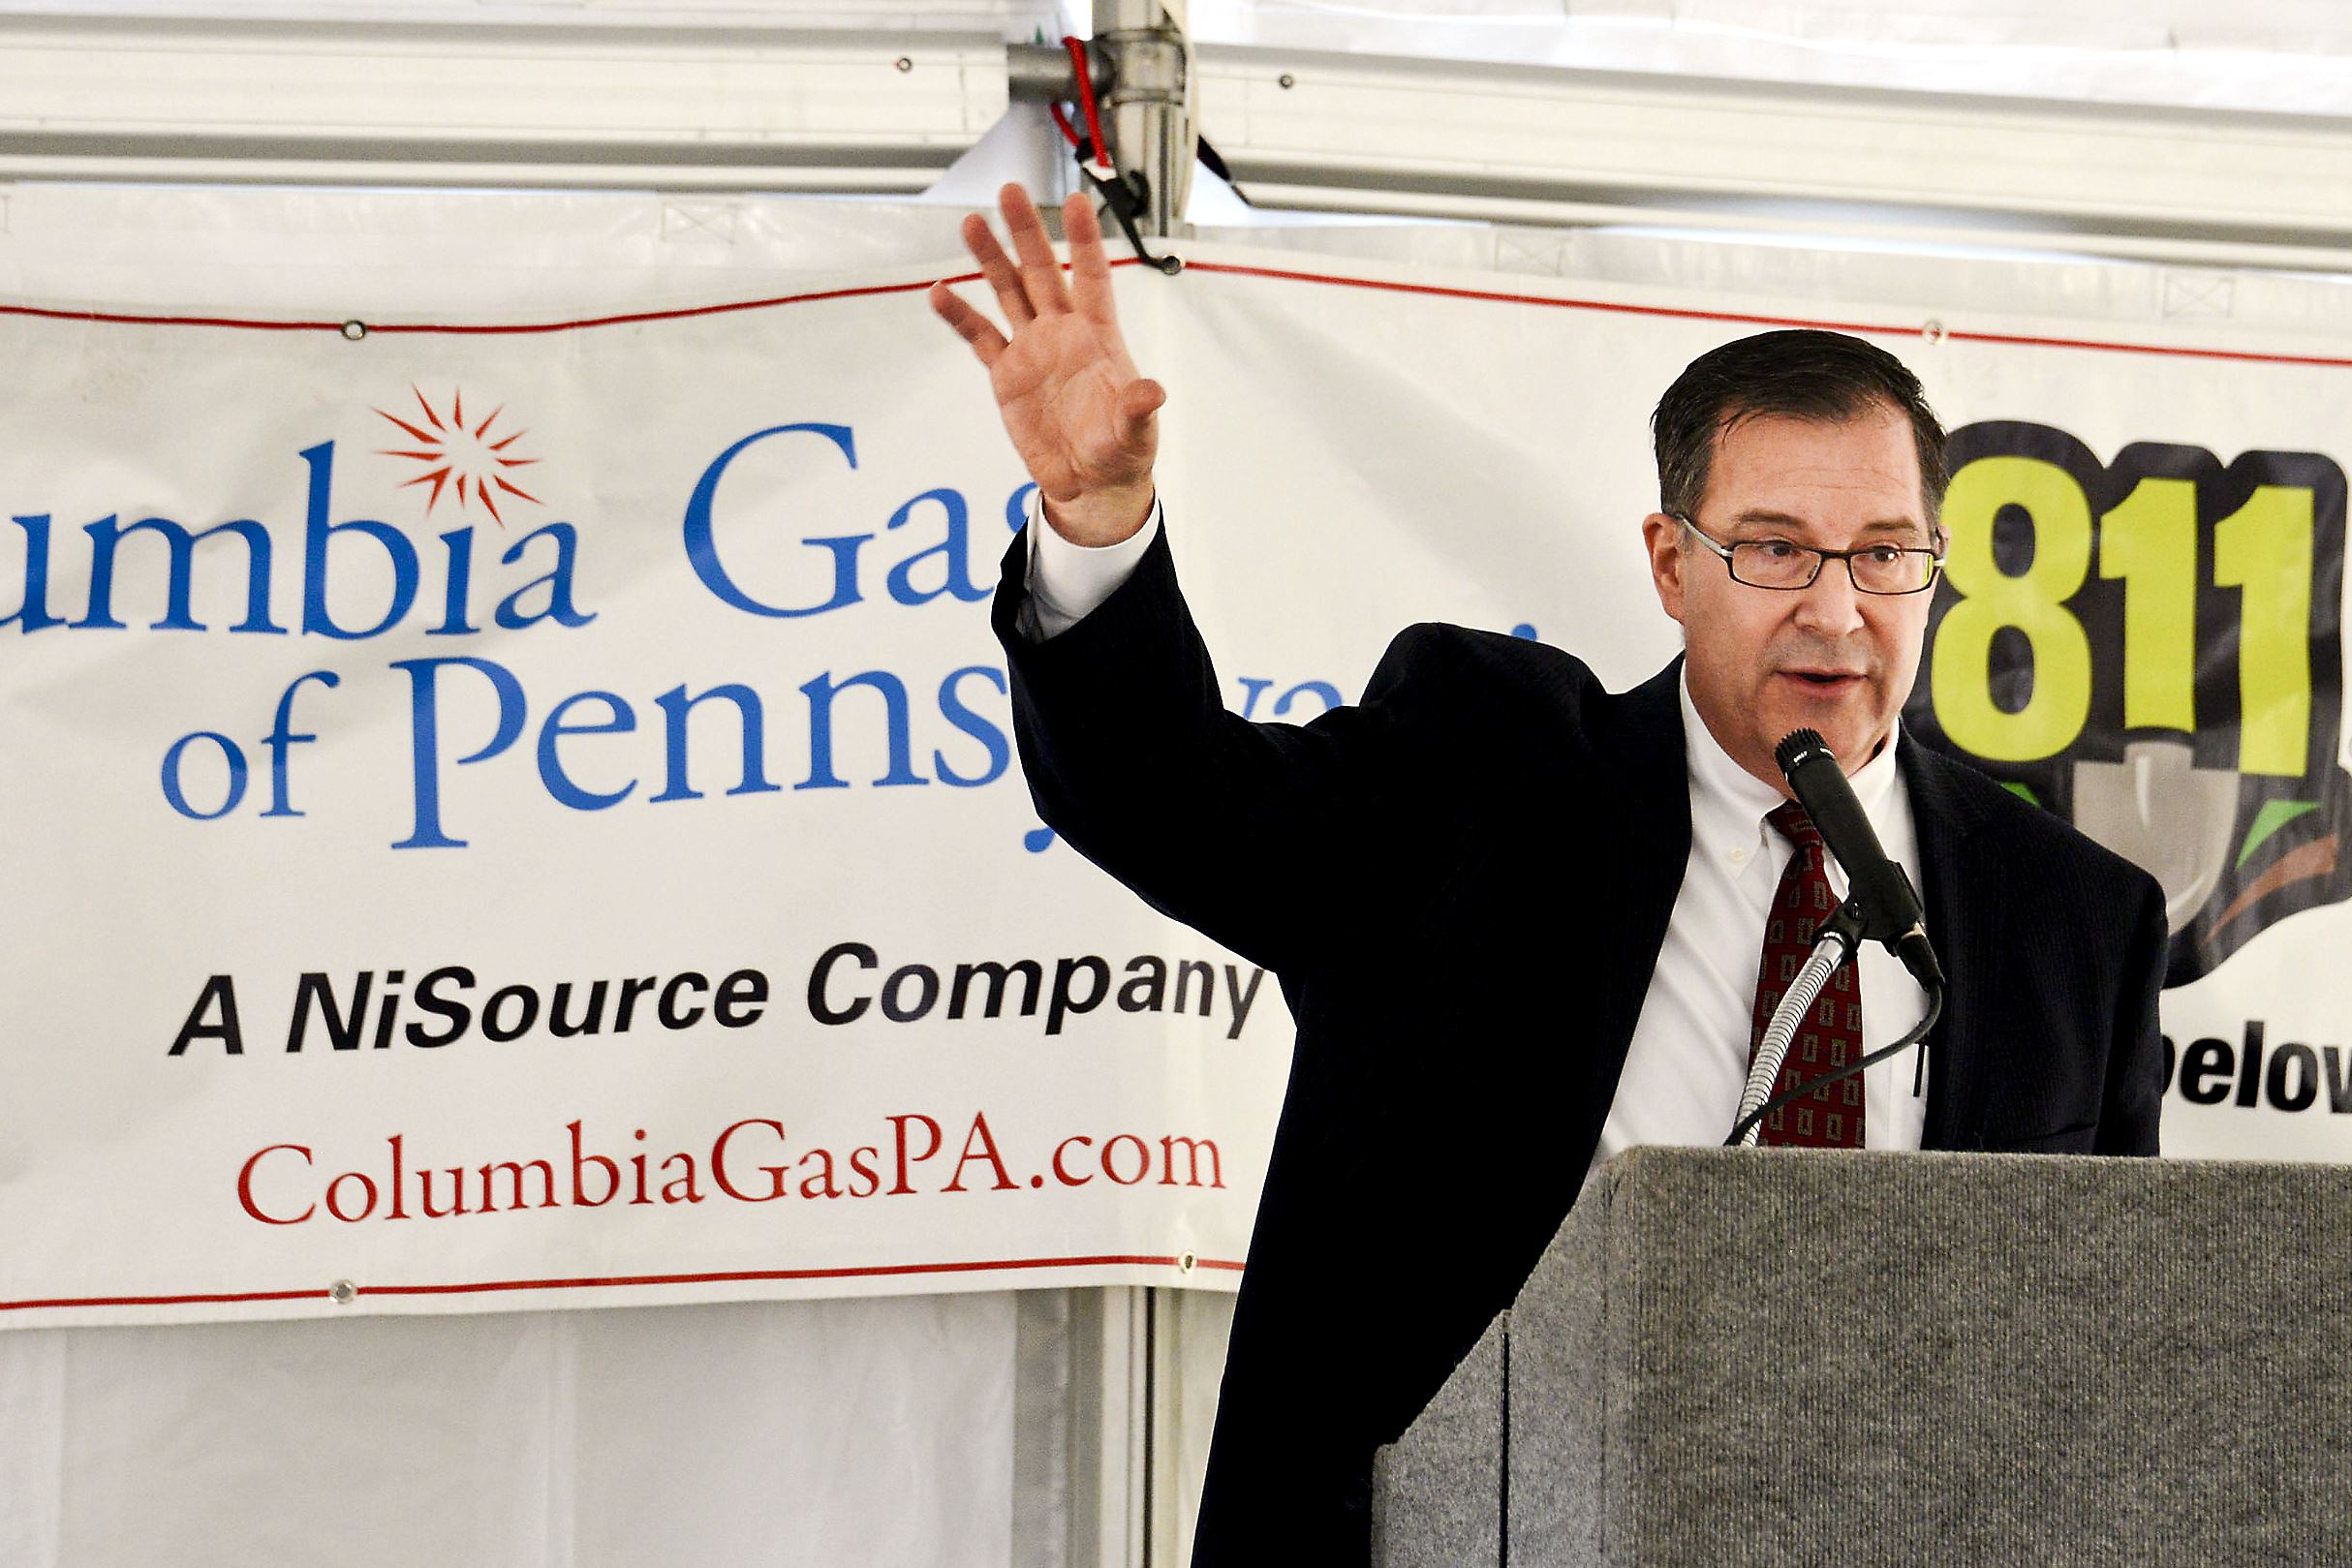 20150402dsColumbia0403PowerSource02 Columbia Gas of Pennsylvania Inc. President Mark Kempic speaks at the ground breaking event.